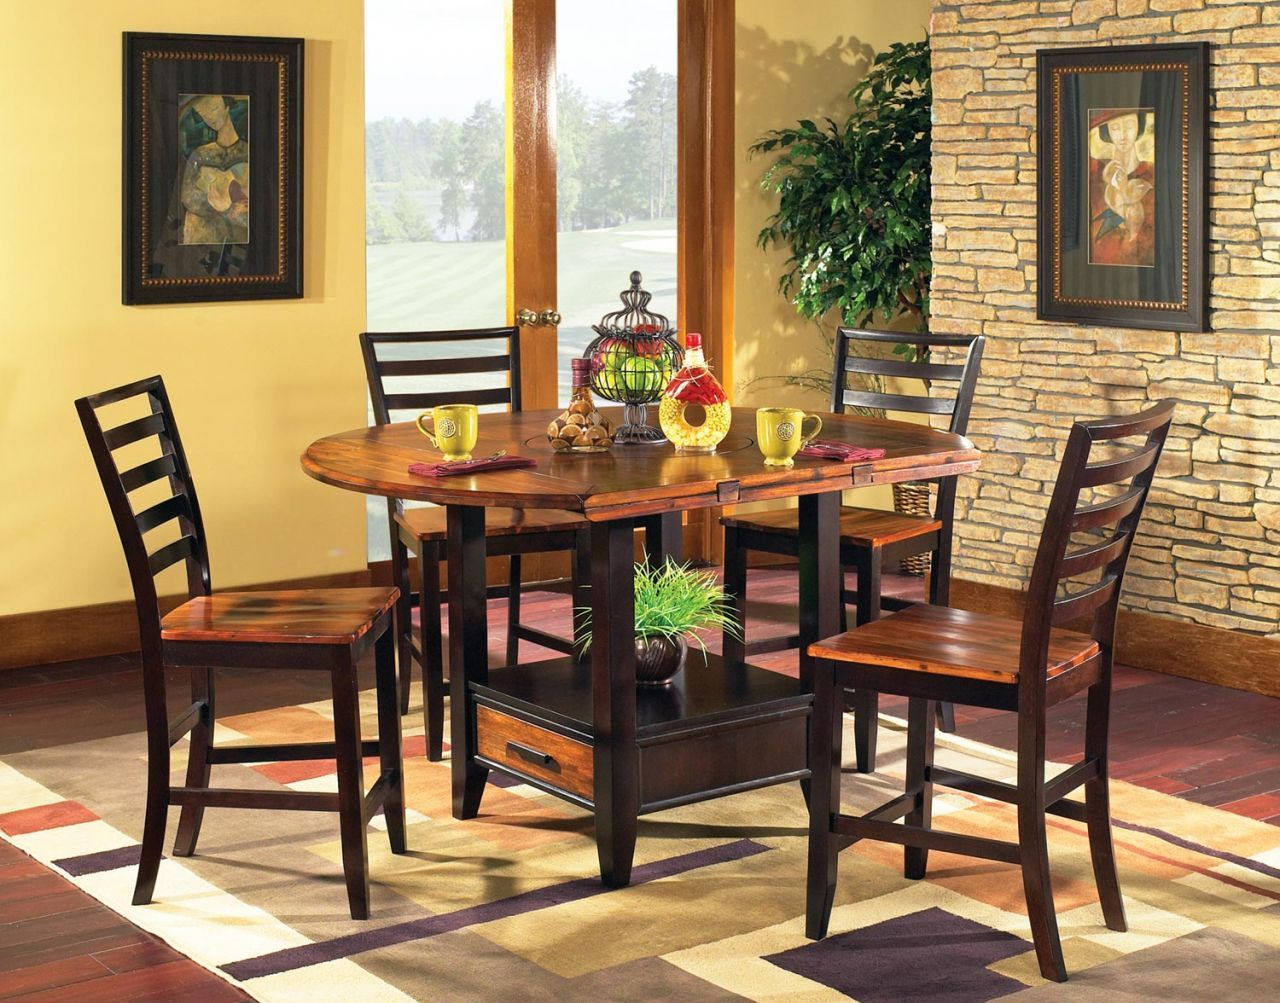 Abaco Square Round Drop Leaf Counter Height Dining Room Set Dining Table With Storage Dining Table Counter Height Dining Sets